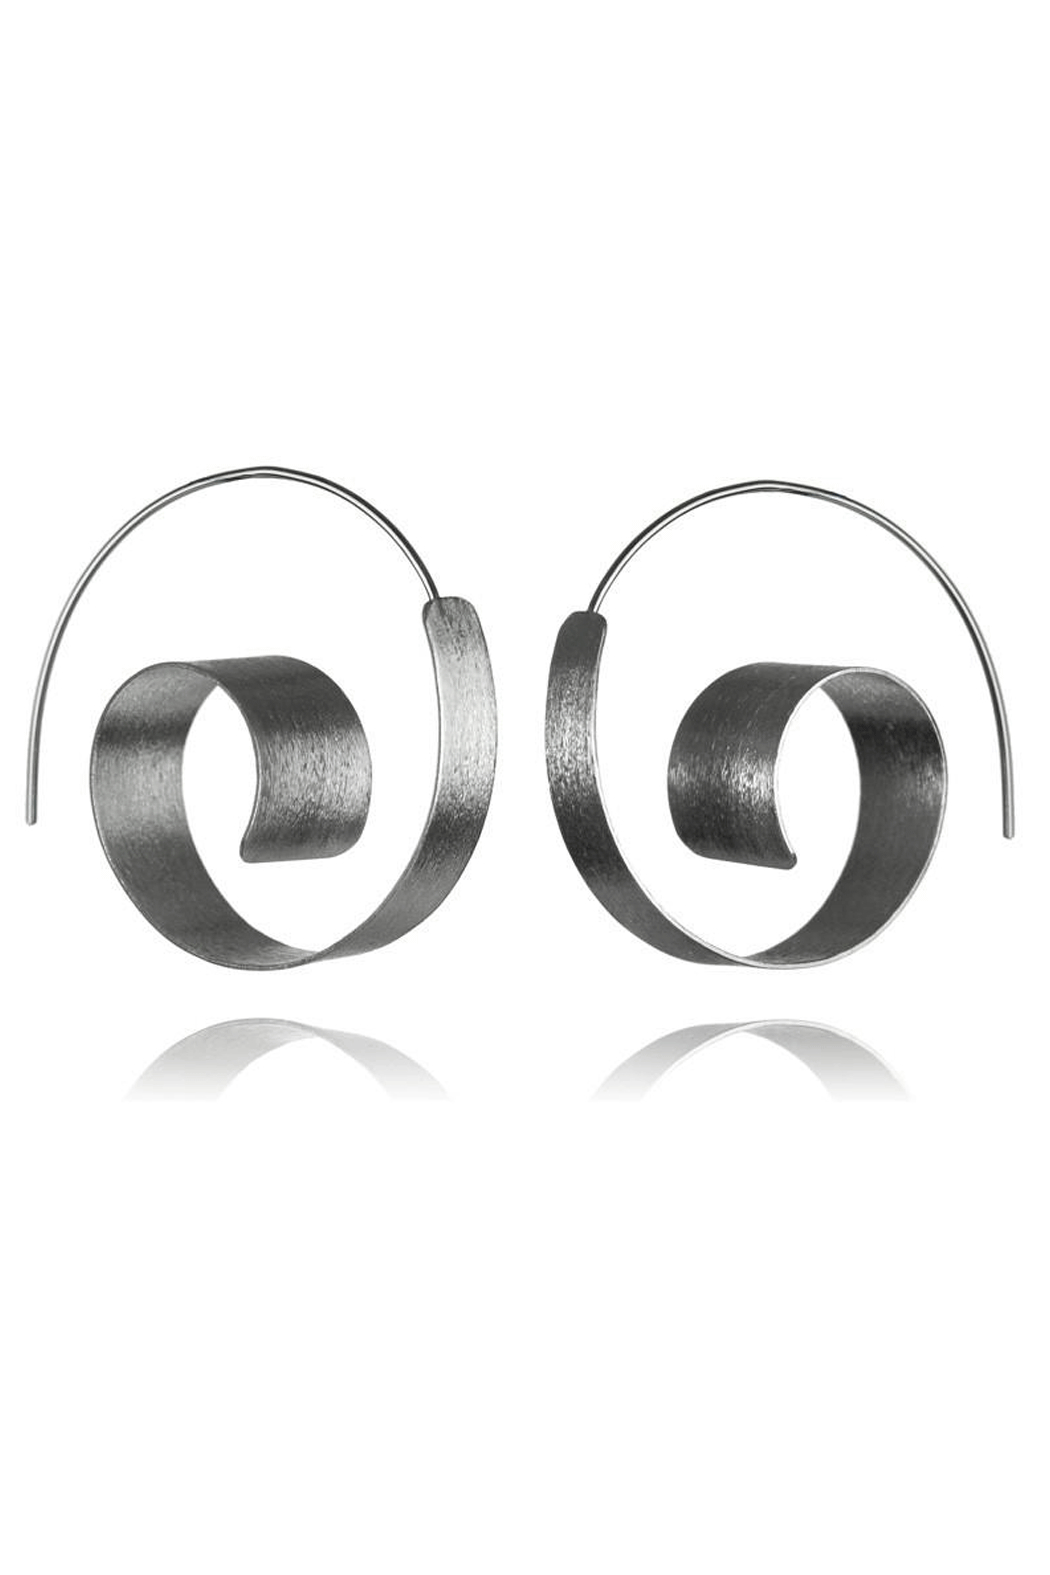 Sikara & Co. Bilbao Swirl Earrings - Front Full Image